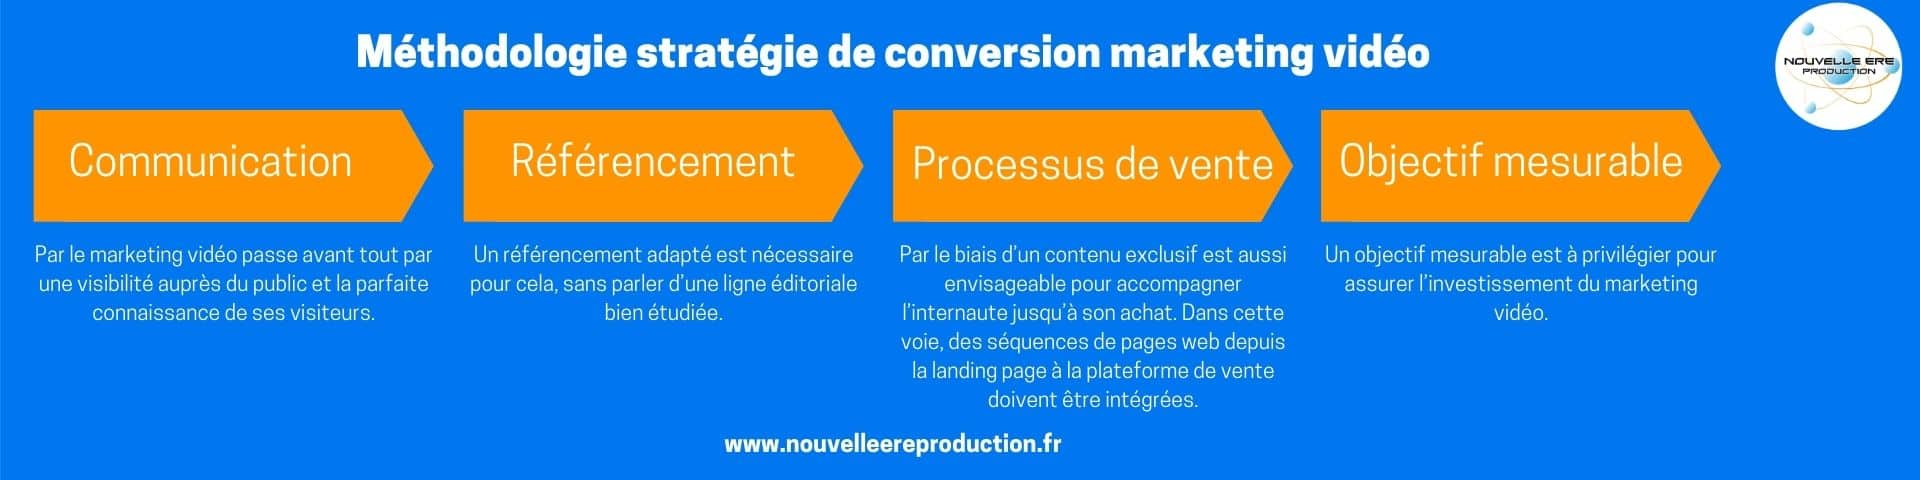 Stratégie de conversion marketing vidéo